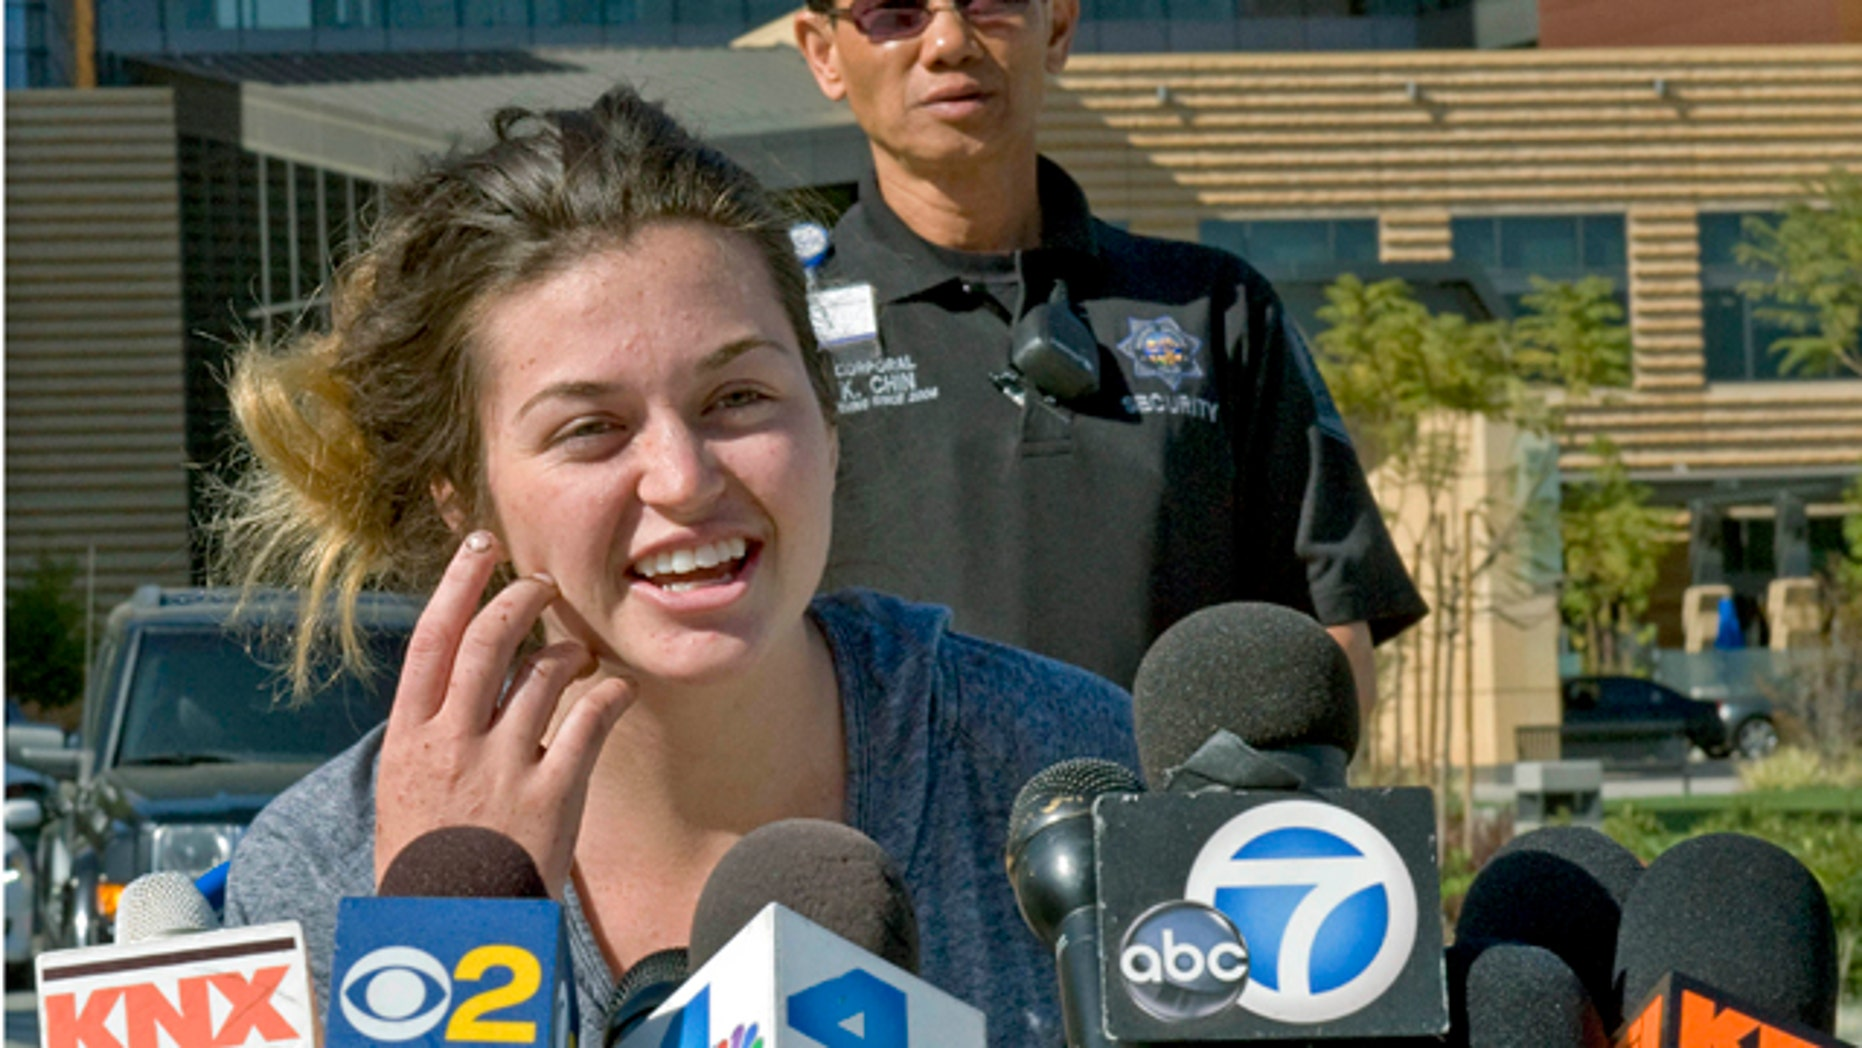 April 8, 2013: Kyndall Jack, one of the two hikers who became lost for nearly a week in the Cleveland National Forest last week, talks about her ordeal and thanks rescuers during a news conference.